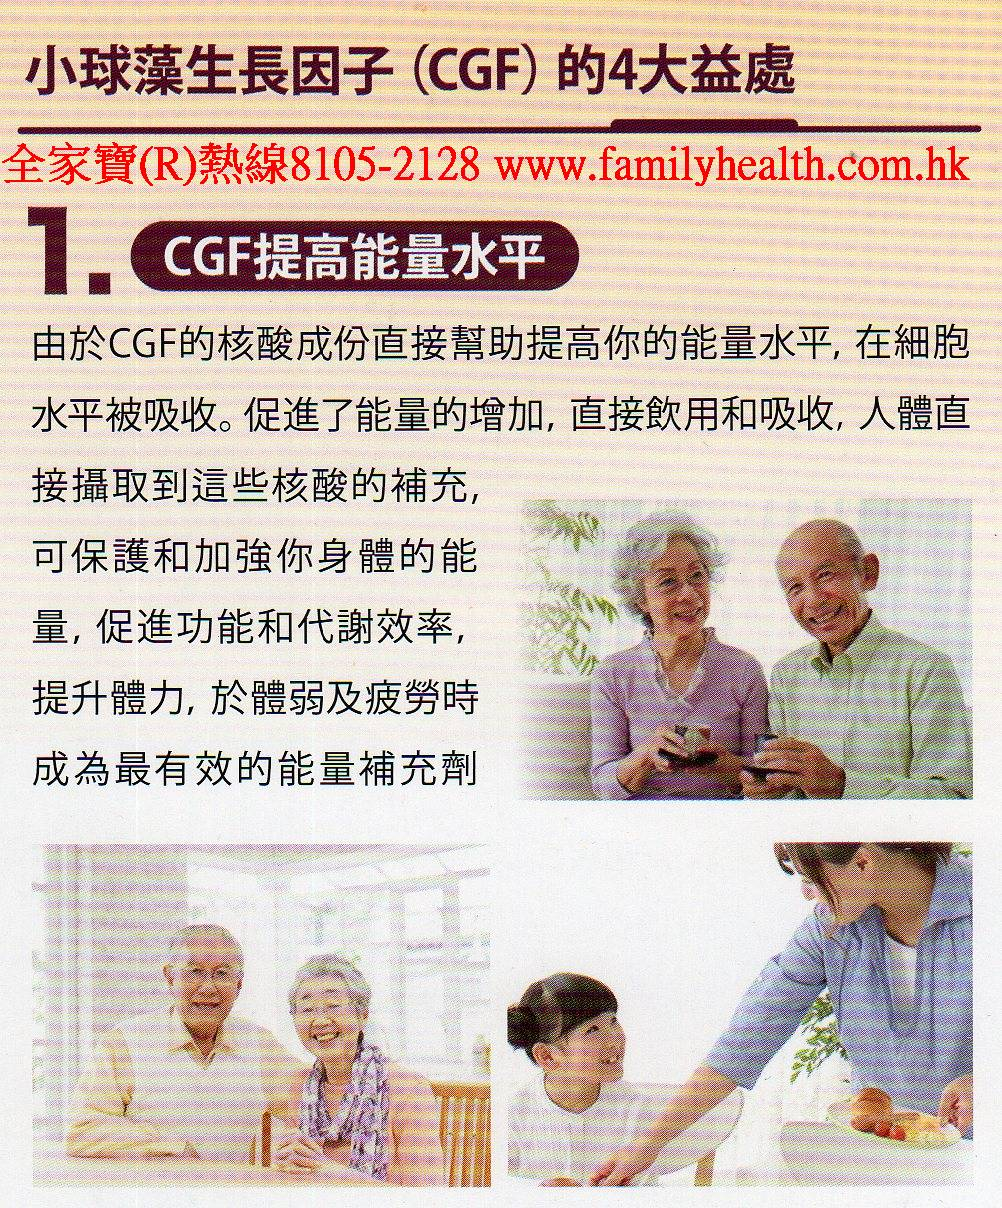 http://www.familyhealth.com.hk/files/full/1028_1.jpg